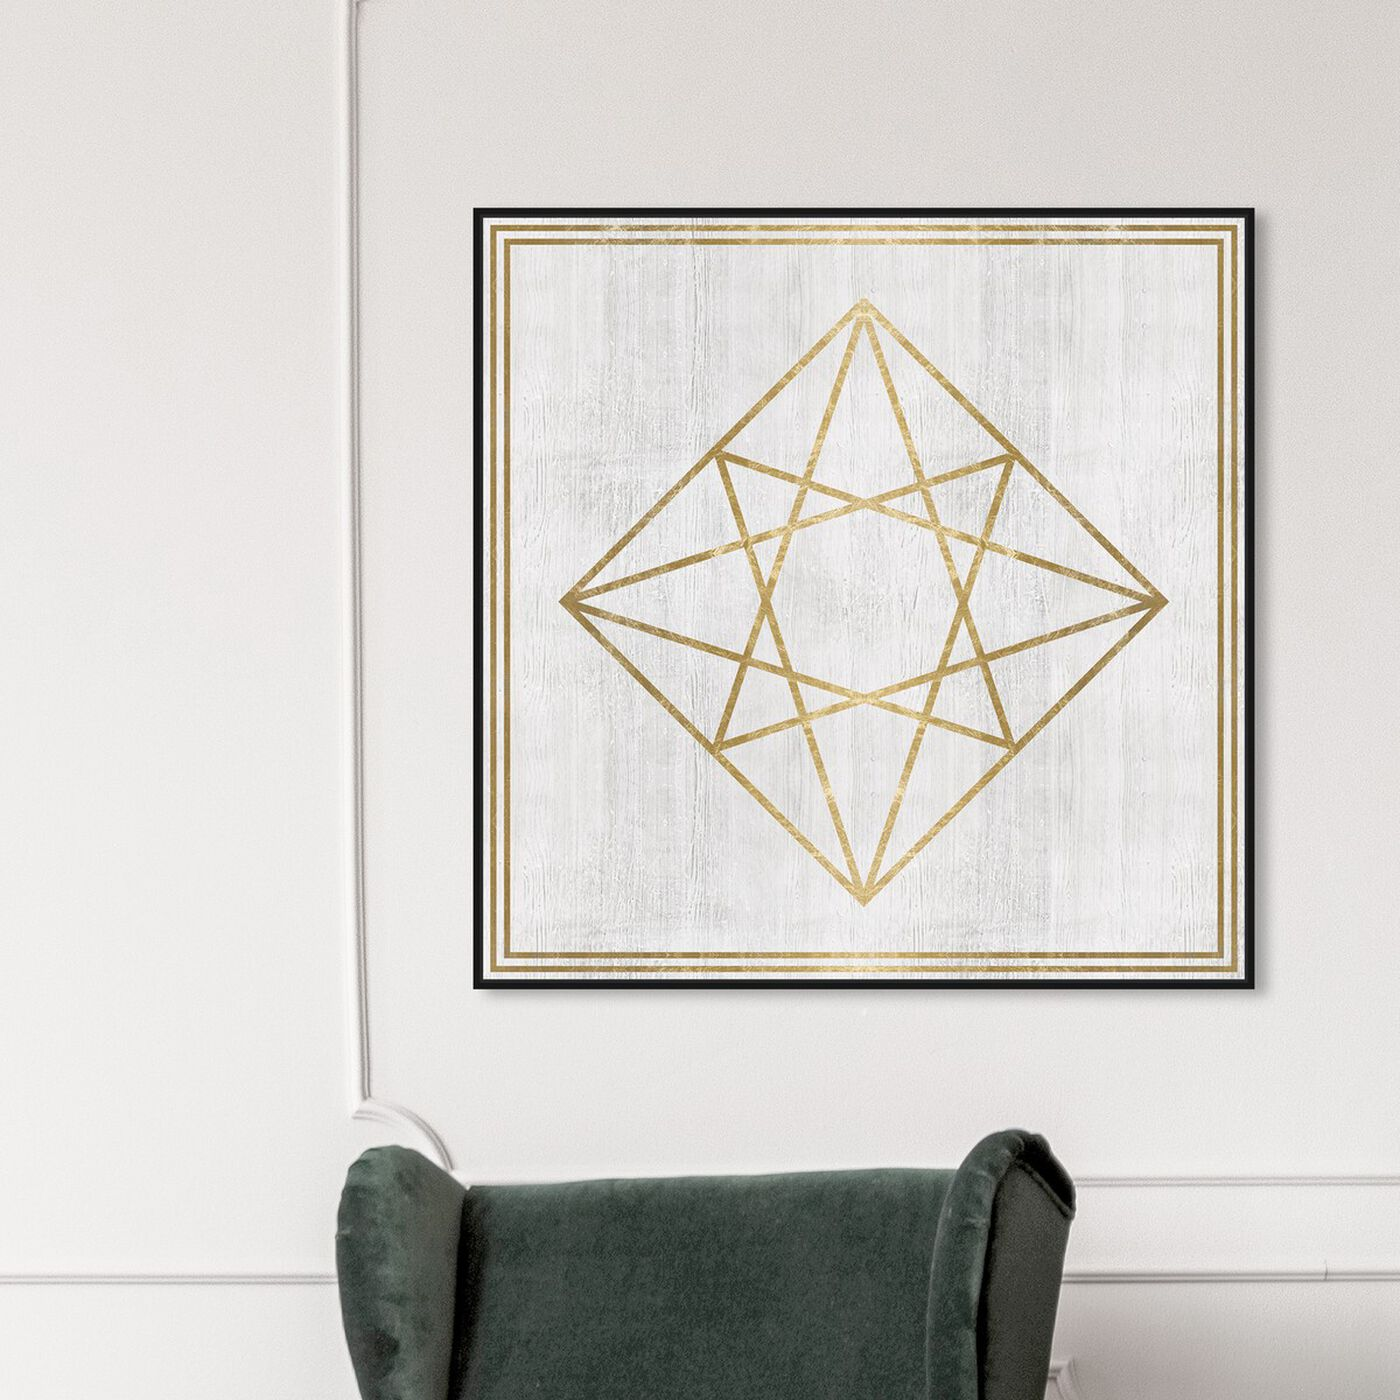 Hanging view of Whitewash Wood Geometric Diamond featuring abstract and geometric art.